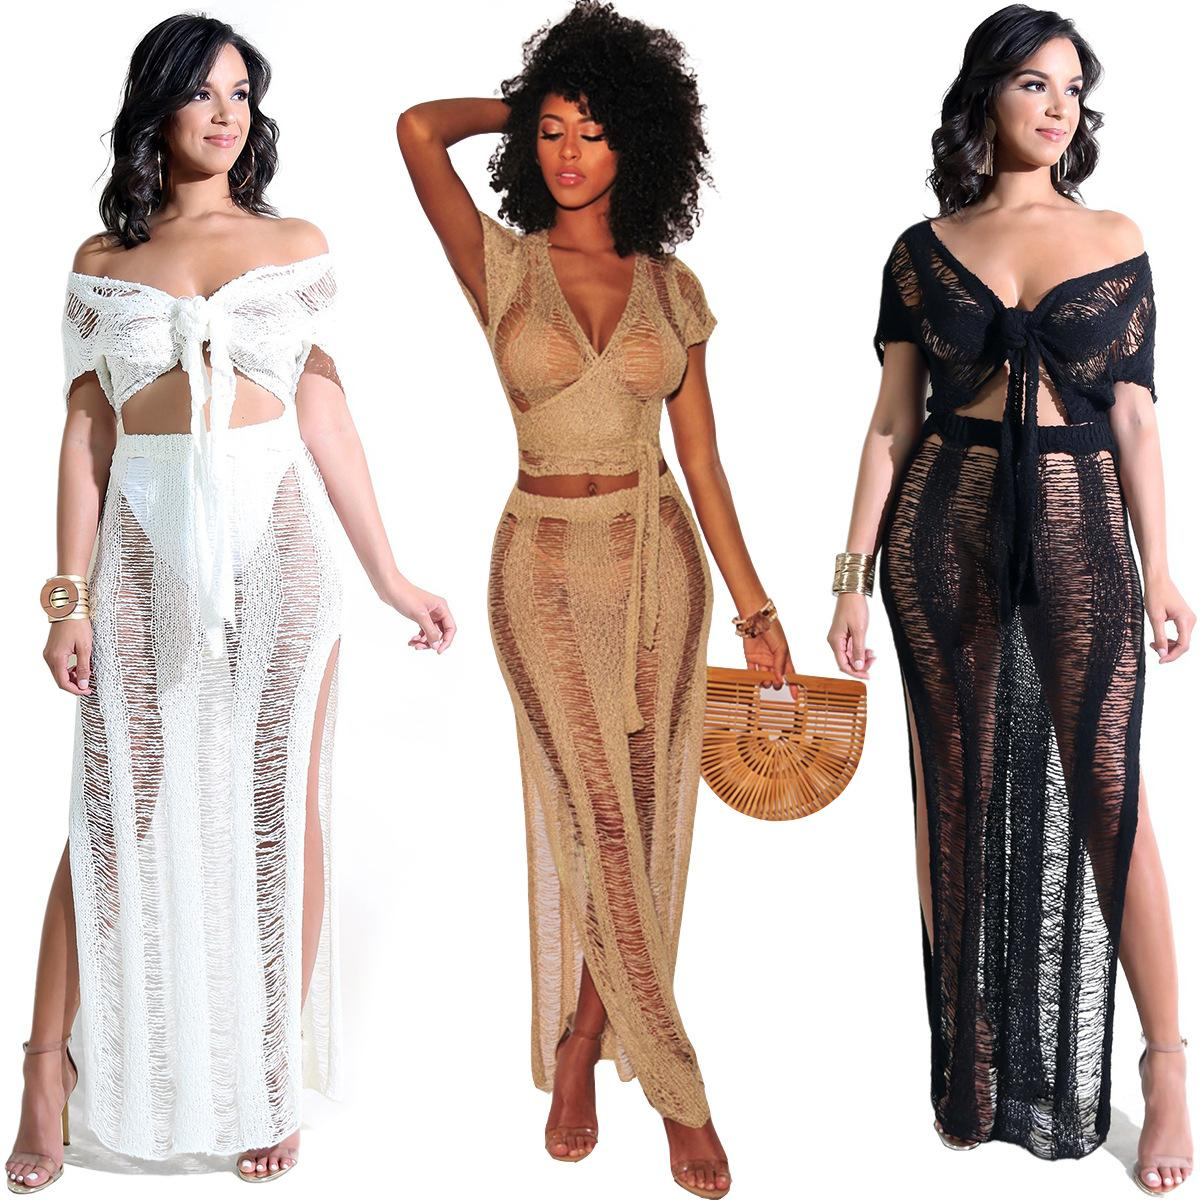 women's nightclubs hollow perspective nightclub knit skirt beach two-piece suit women designer maxi dresses clothes dresses